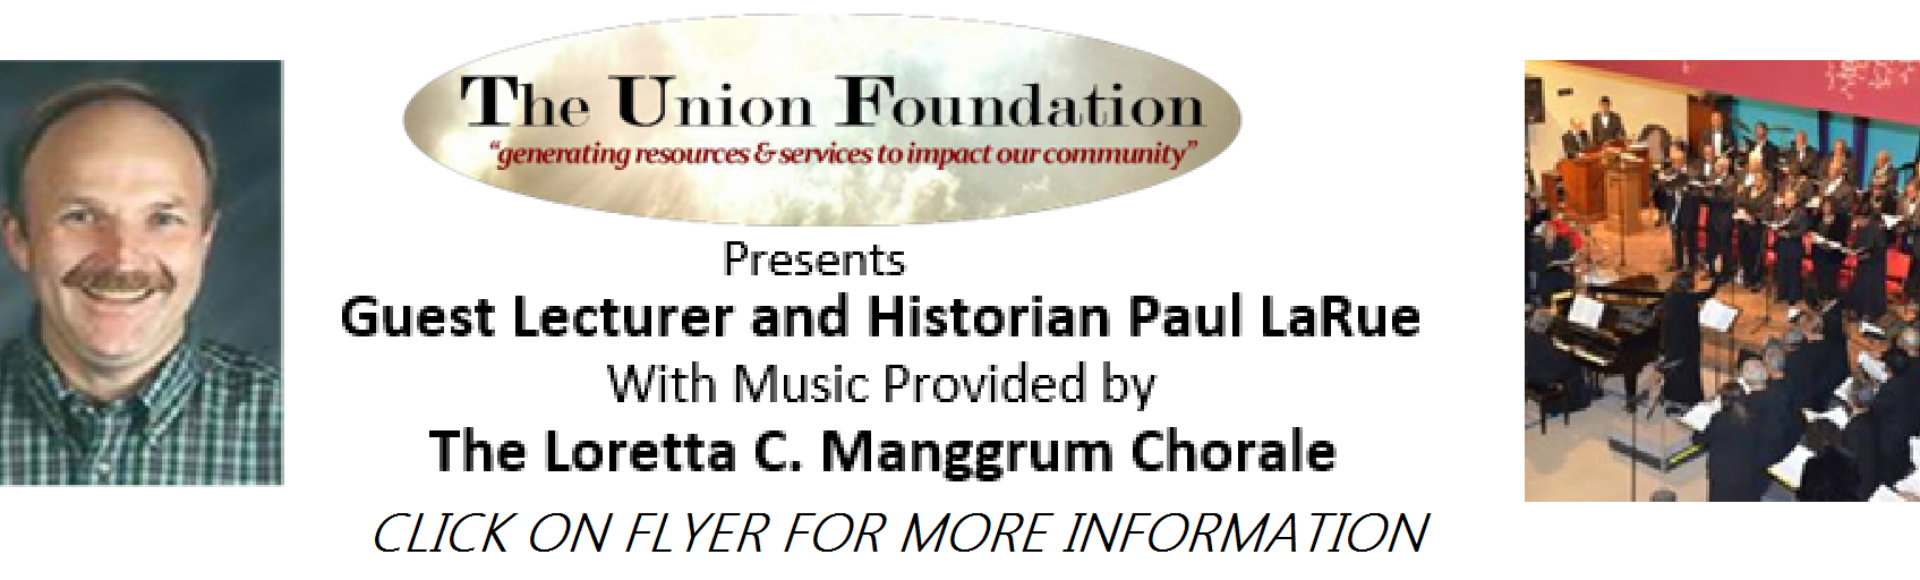 Union Foundation Concert 2018